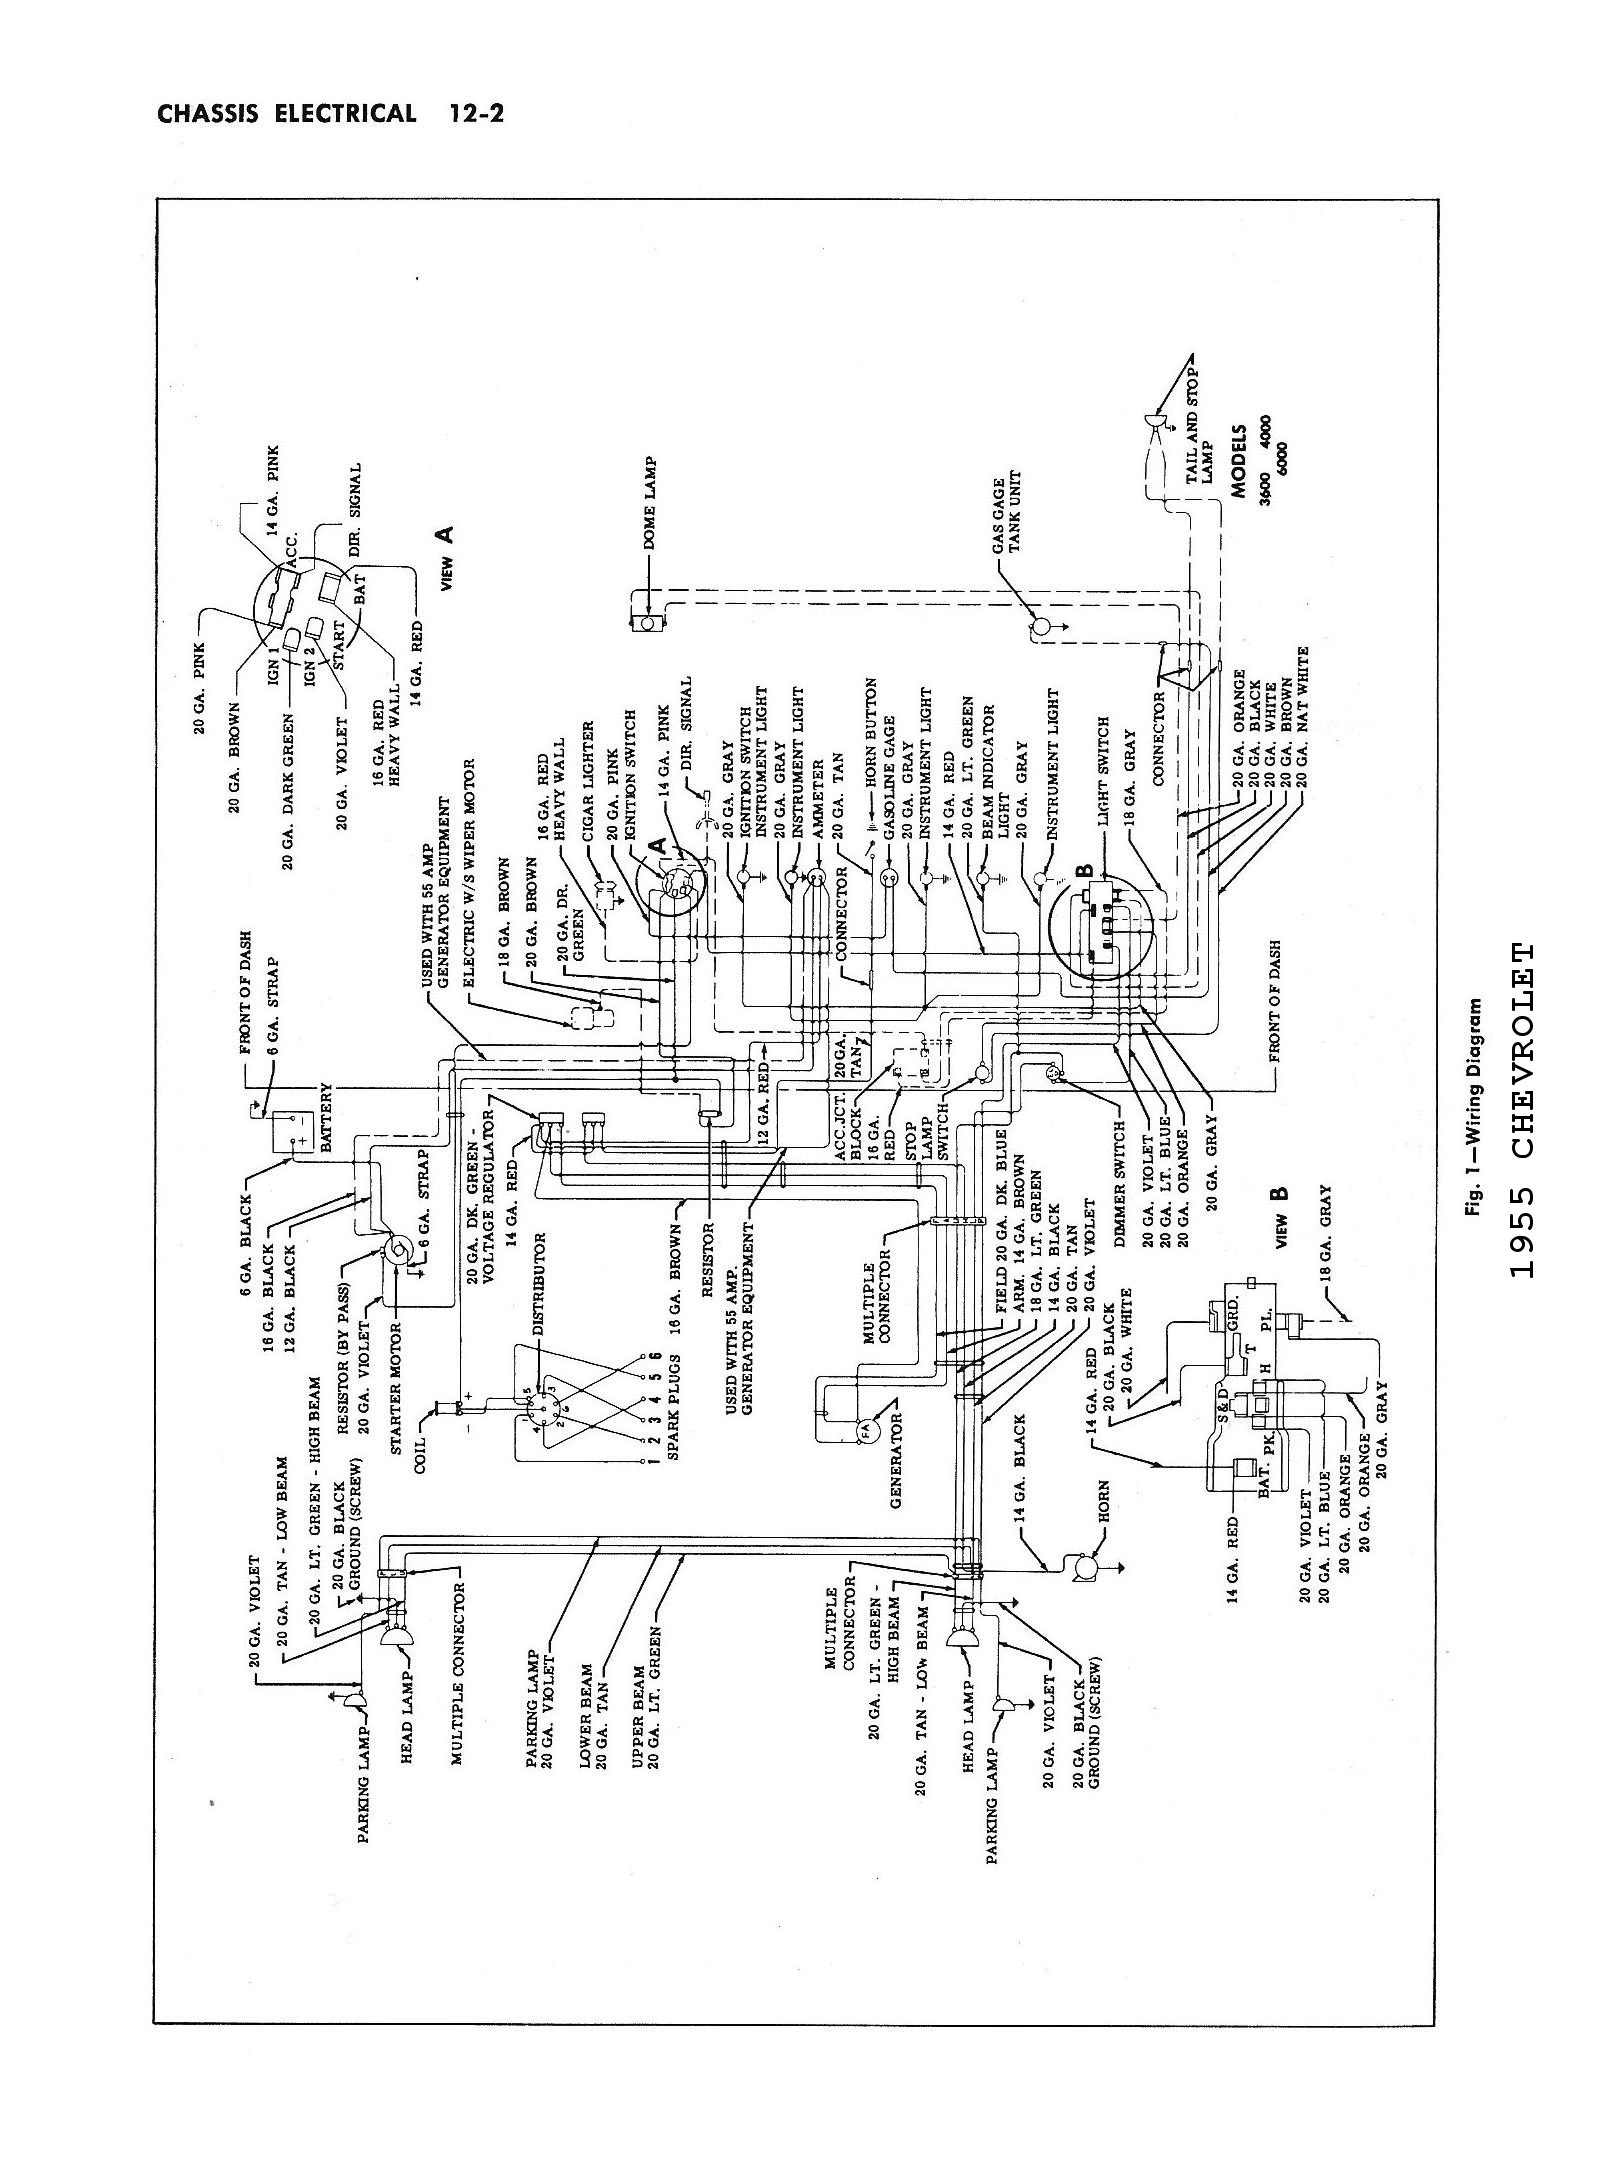 1959 chevy pickup wiring diagram data wiring schema 1993 chevy 3500 wiring  diagram 1959 chevy pickup